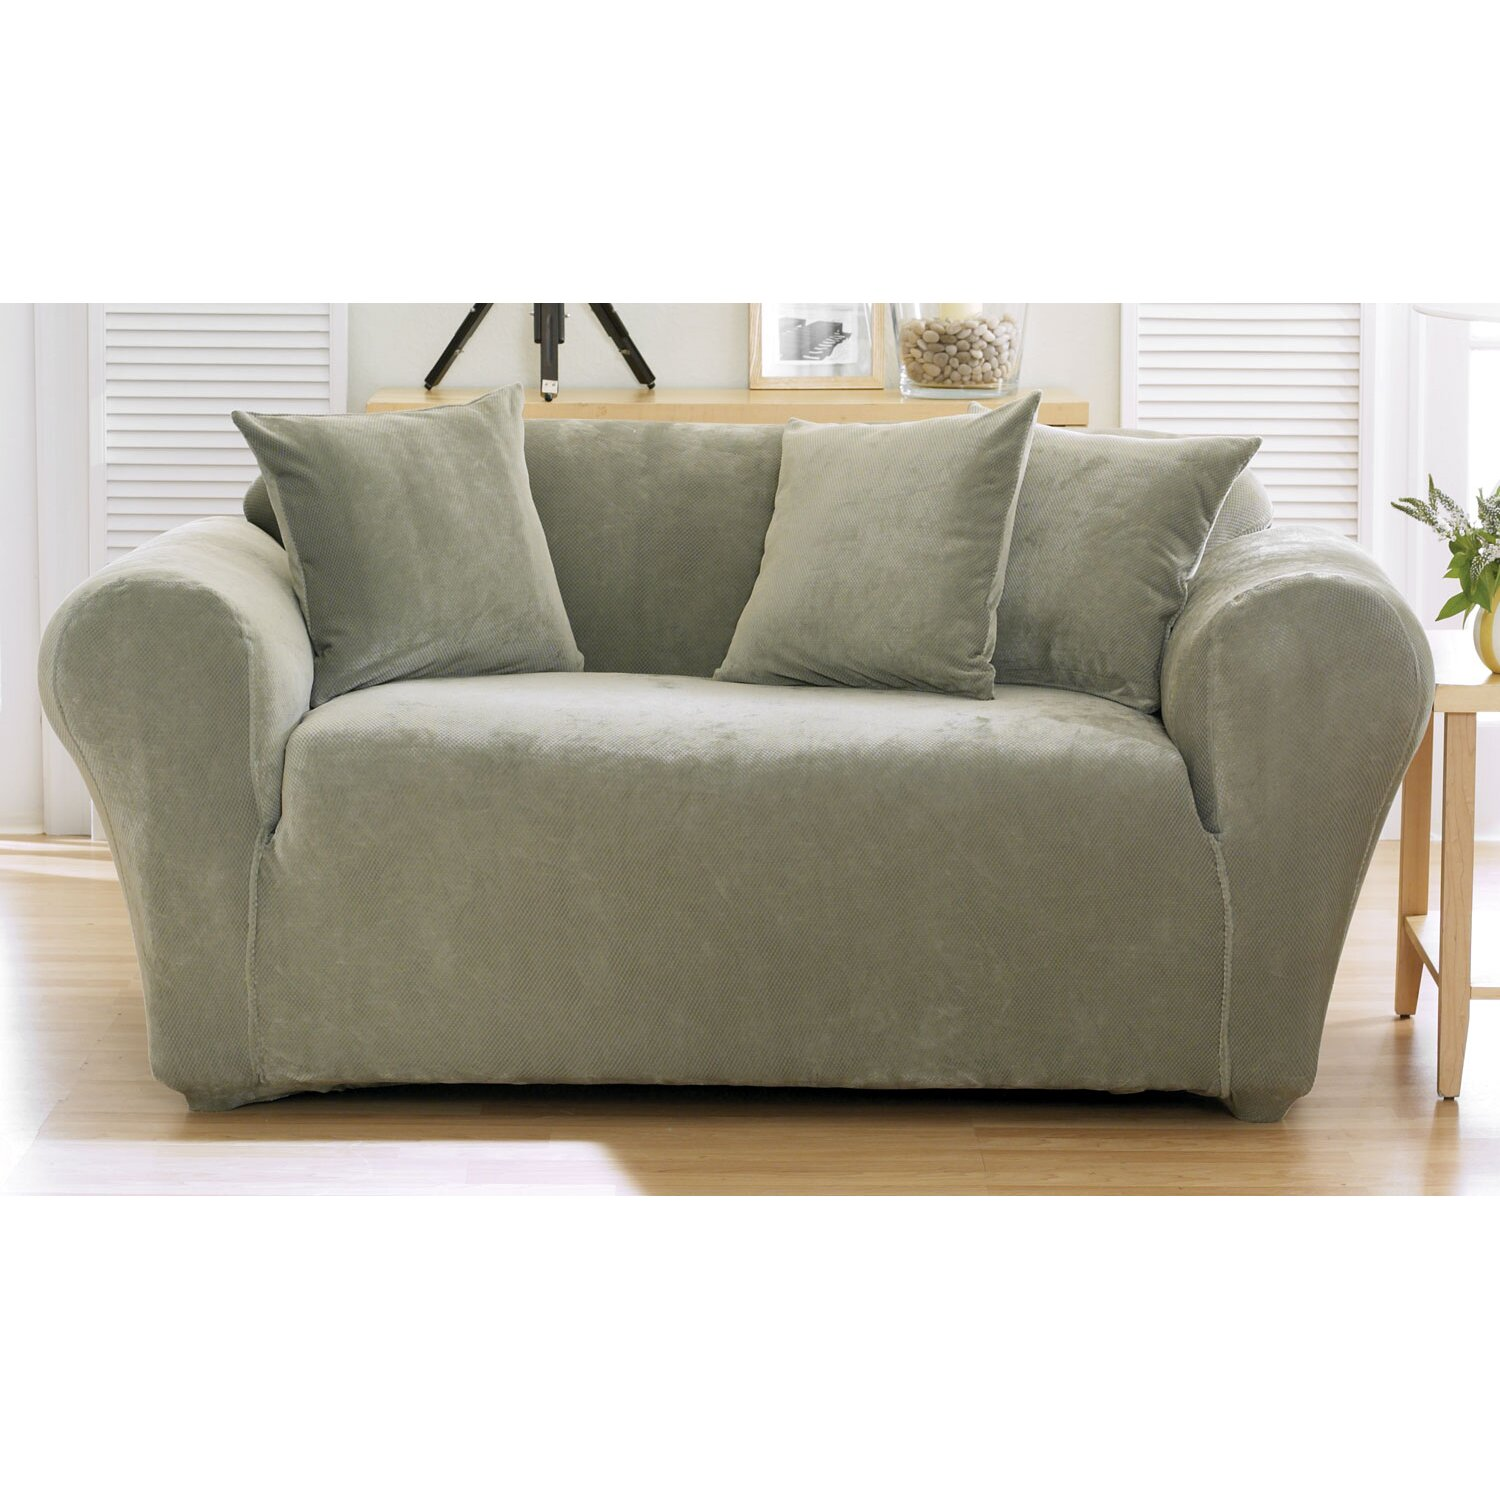 Sure fit stretch pique separate seat loveseat slipcover reviews Loveseat stretch slipcovers